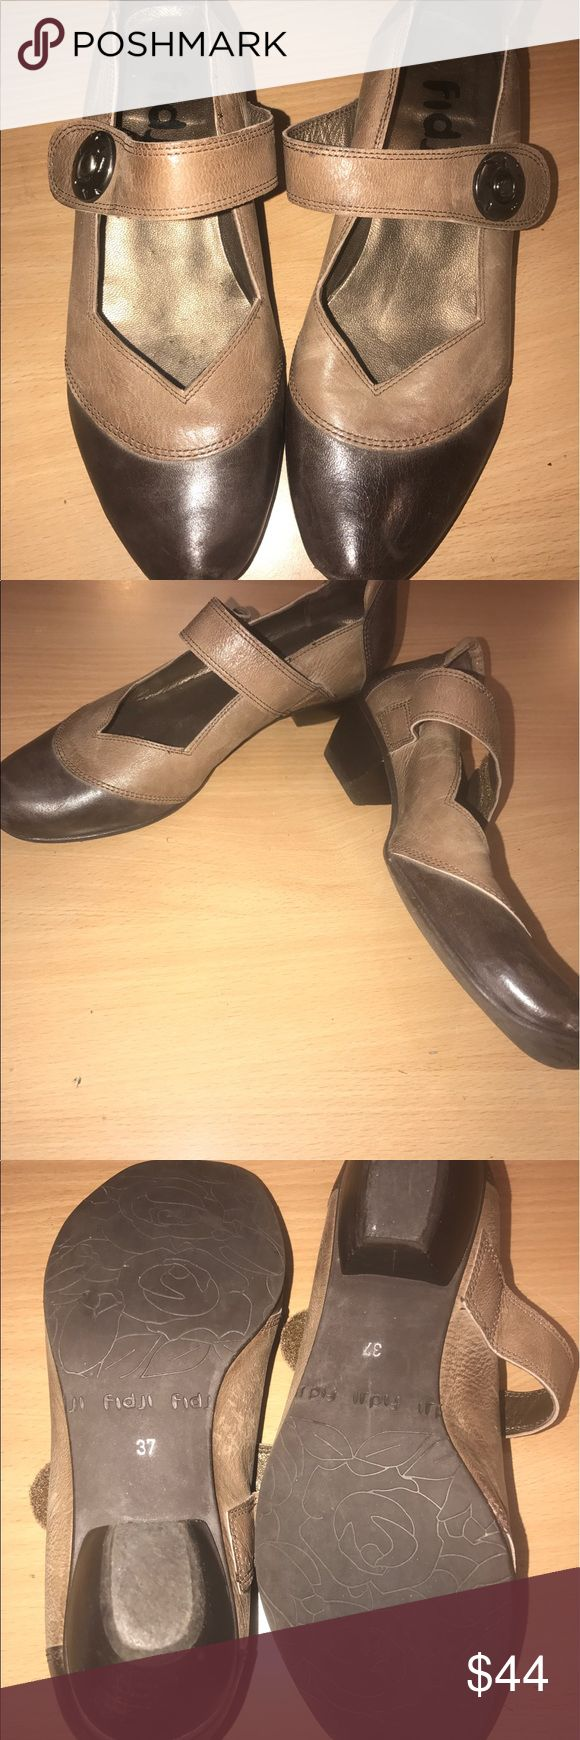 "Fidji e906 brown & taupe Mary Janes short heels. Cute, comfortable European shoes. Velcro closure, 2 tone brown and taupe. 1.5"" heel. Made in Portugal. Marked size 37. Excellent condition. fidji Shoes"